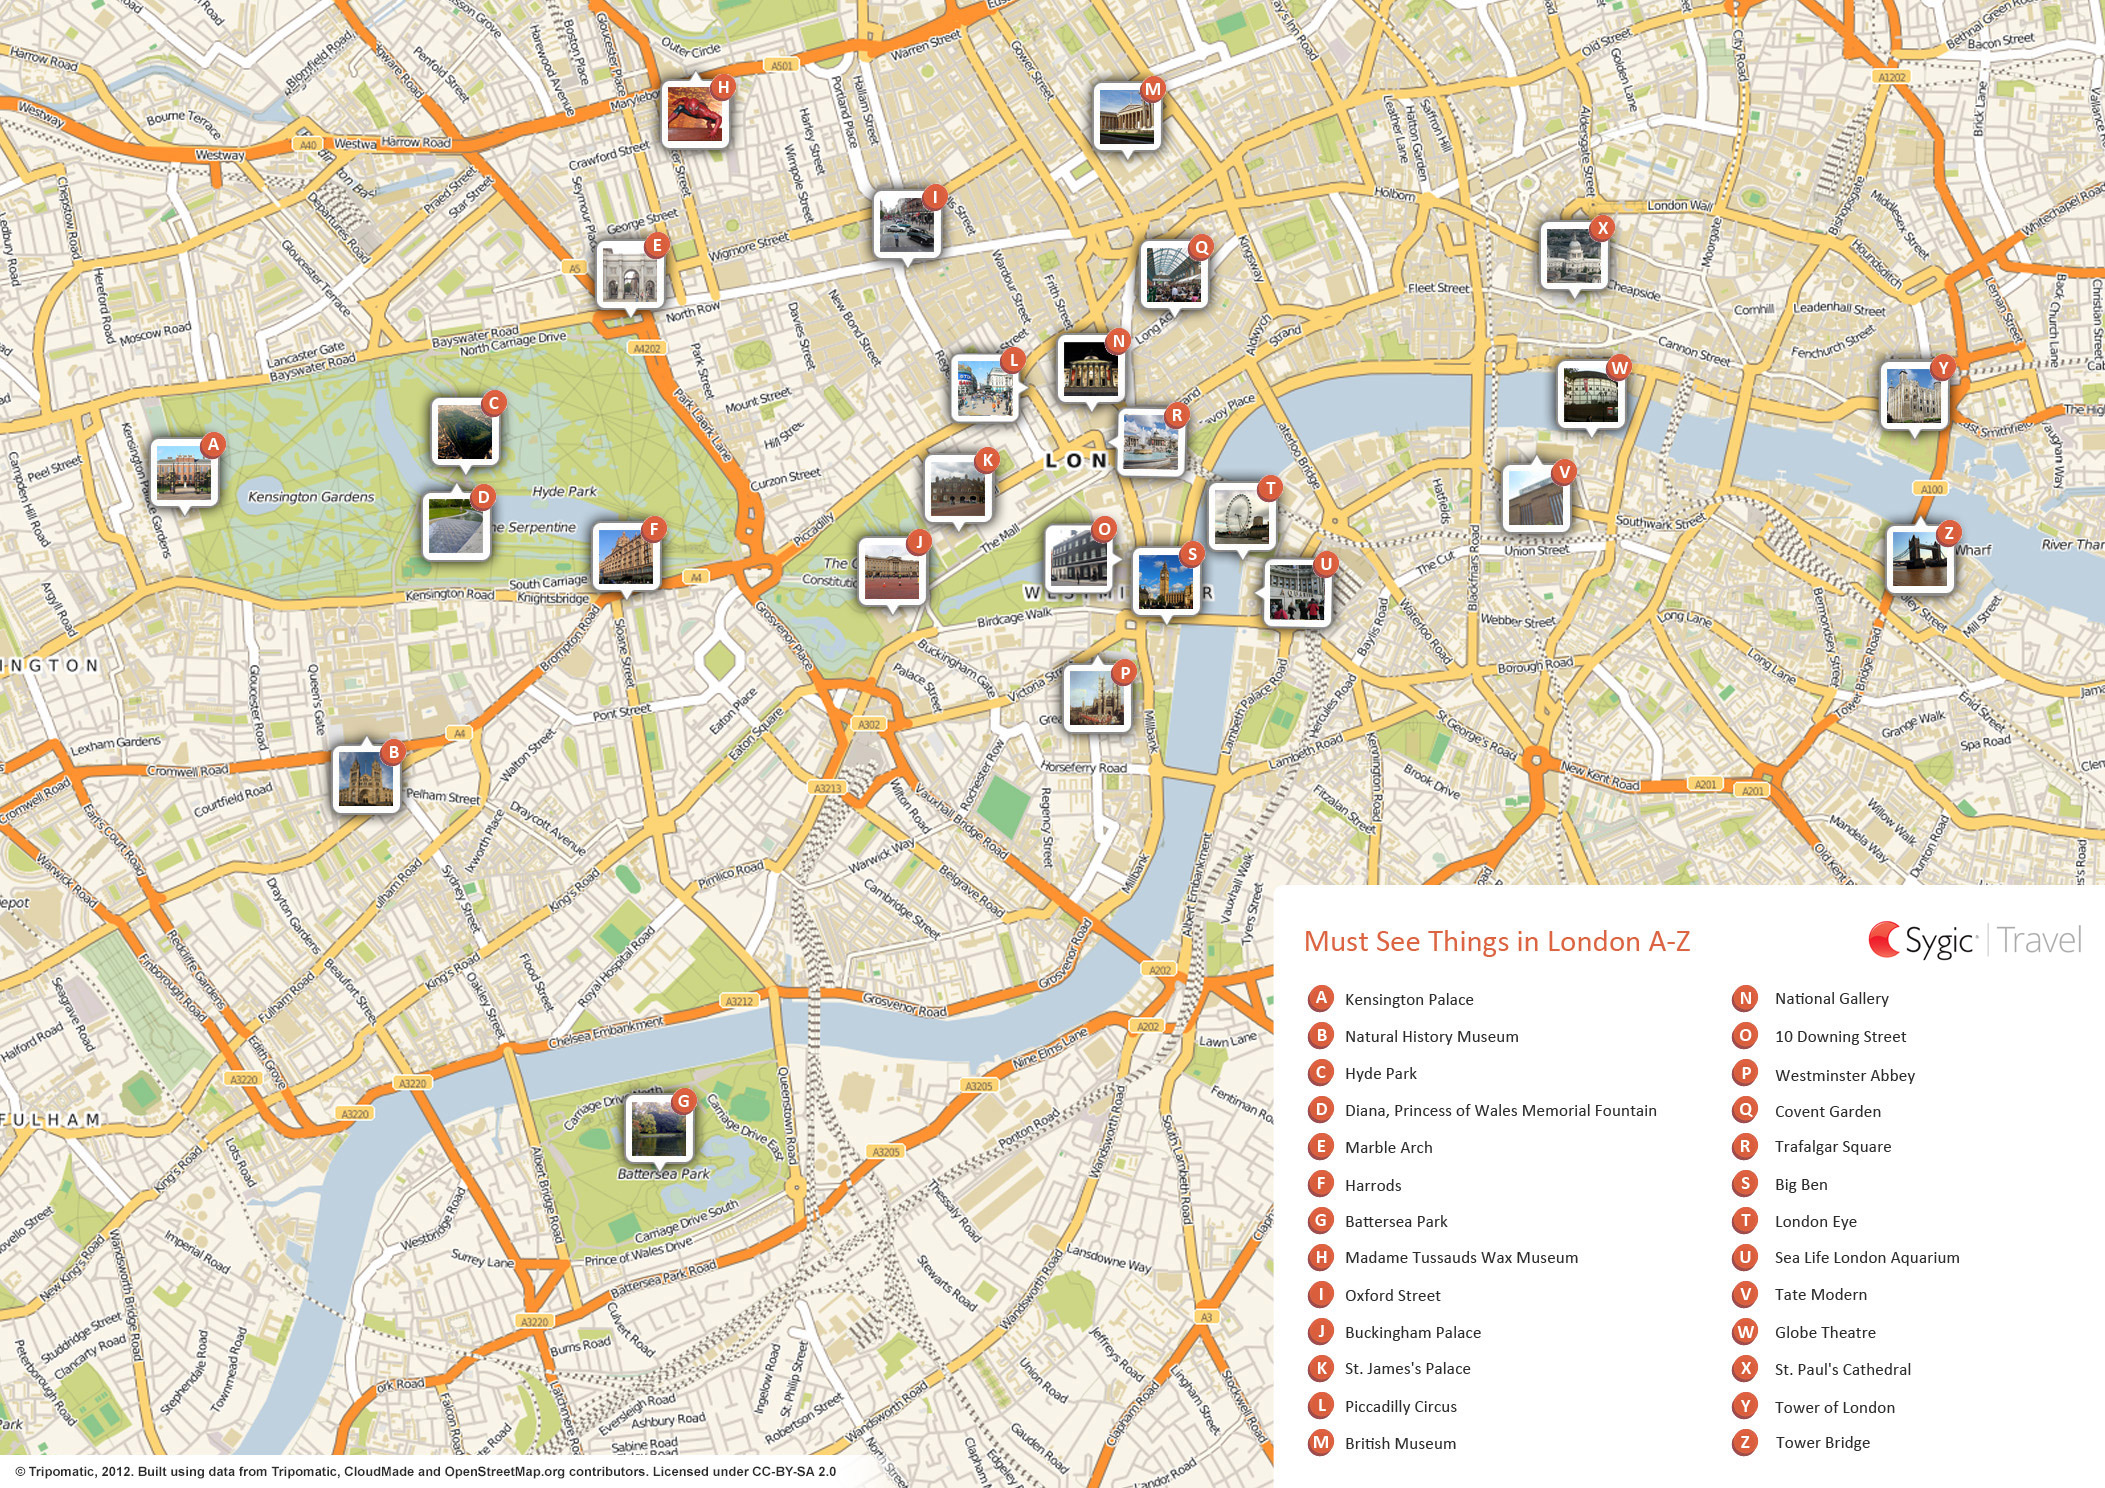 London Printable Tourist Map – Tourist Map of London England